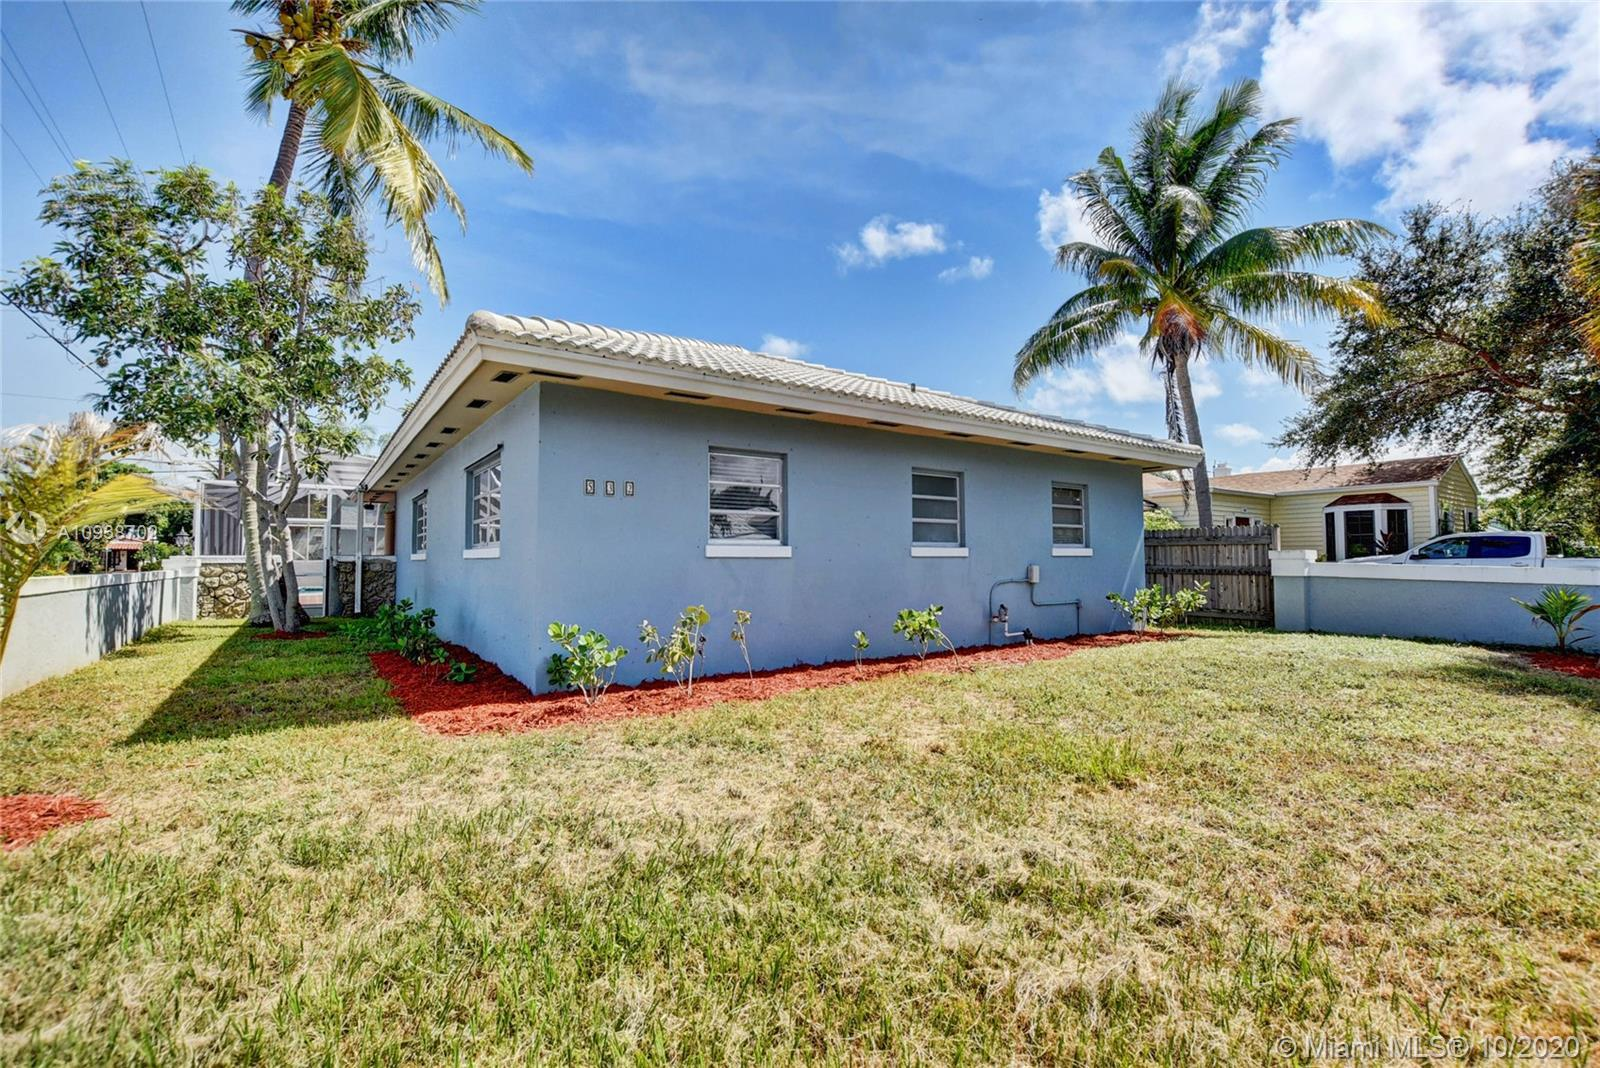 Fantastic 3 bedroom, 2 bathroom single family corner lot home with a pool home in Lake Worth! This h